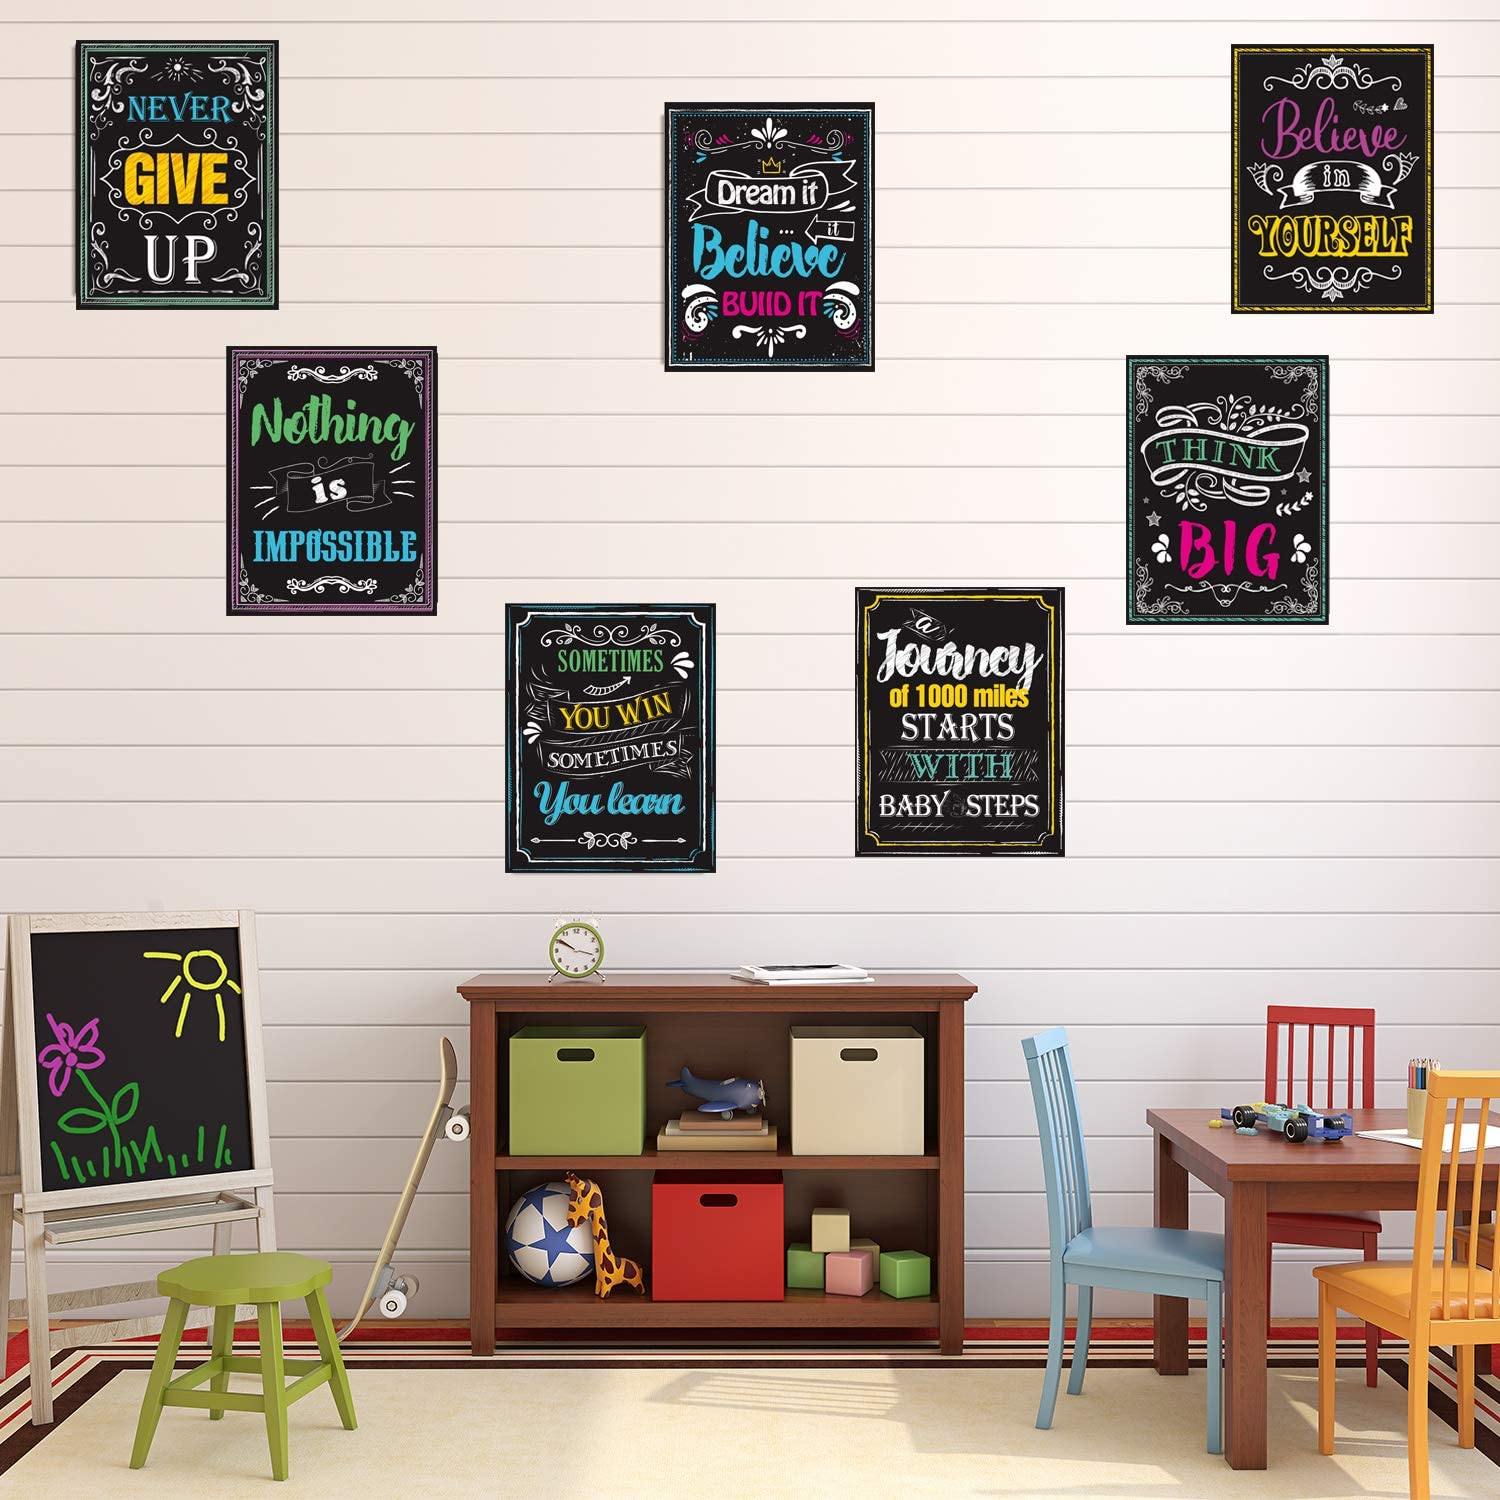 Inspirational Quotes Posters Wall Art for Students Teachers Classroom /& Home Decorations 12 x 14 Inches 10 Pack Style 1 Motivational Posters for Classroom